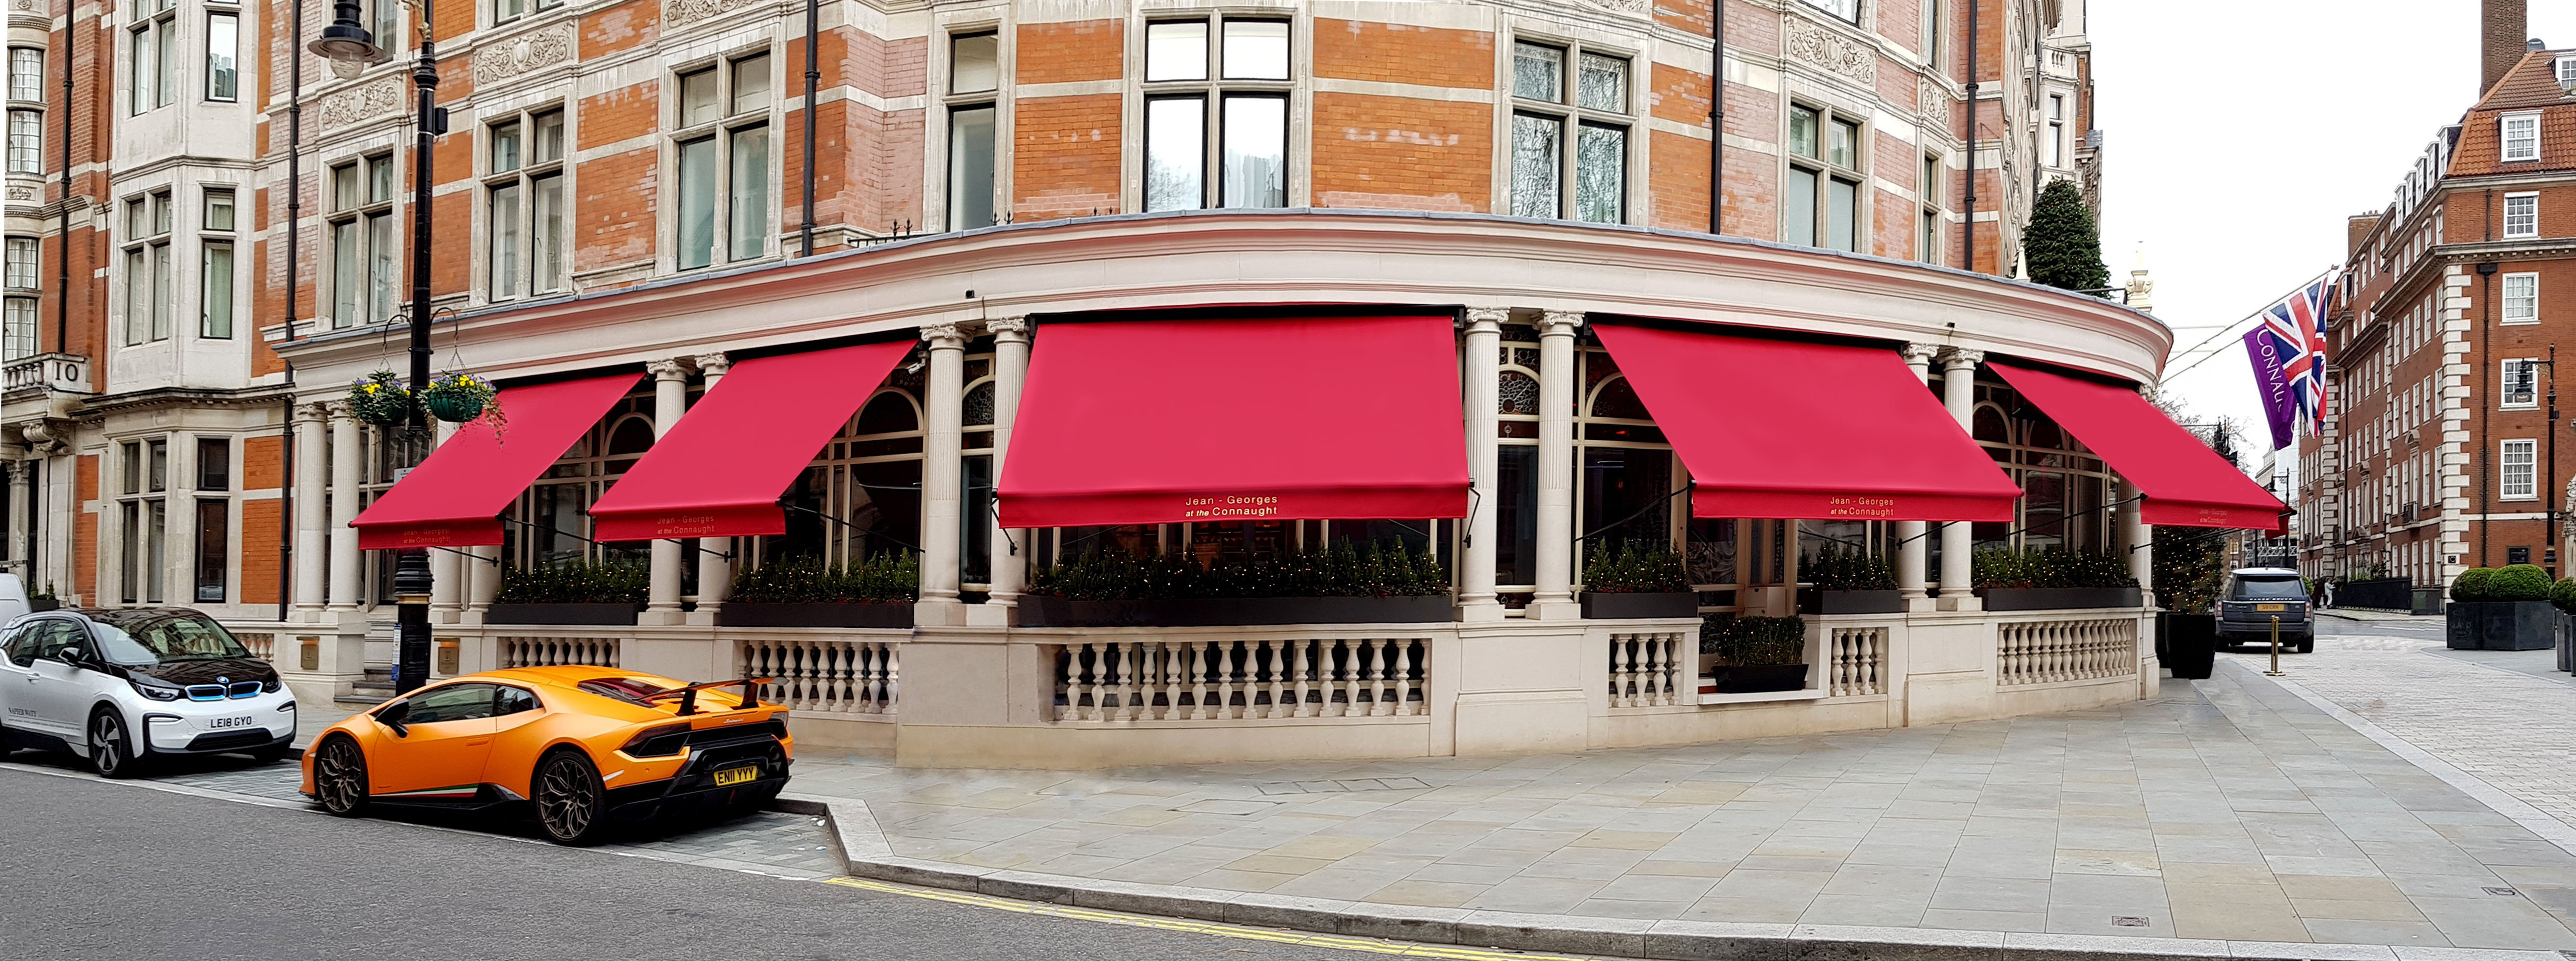 Awnings Connaught hotel